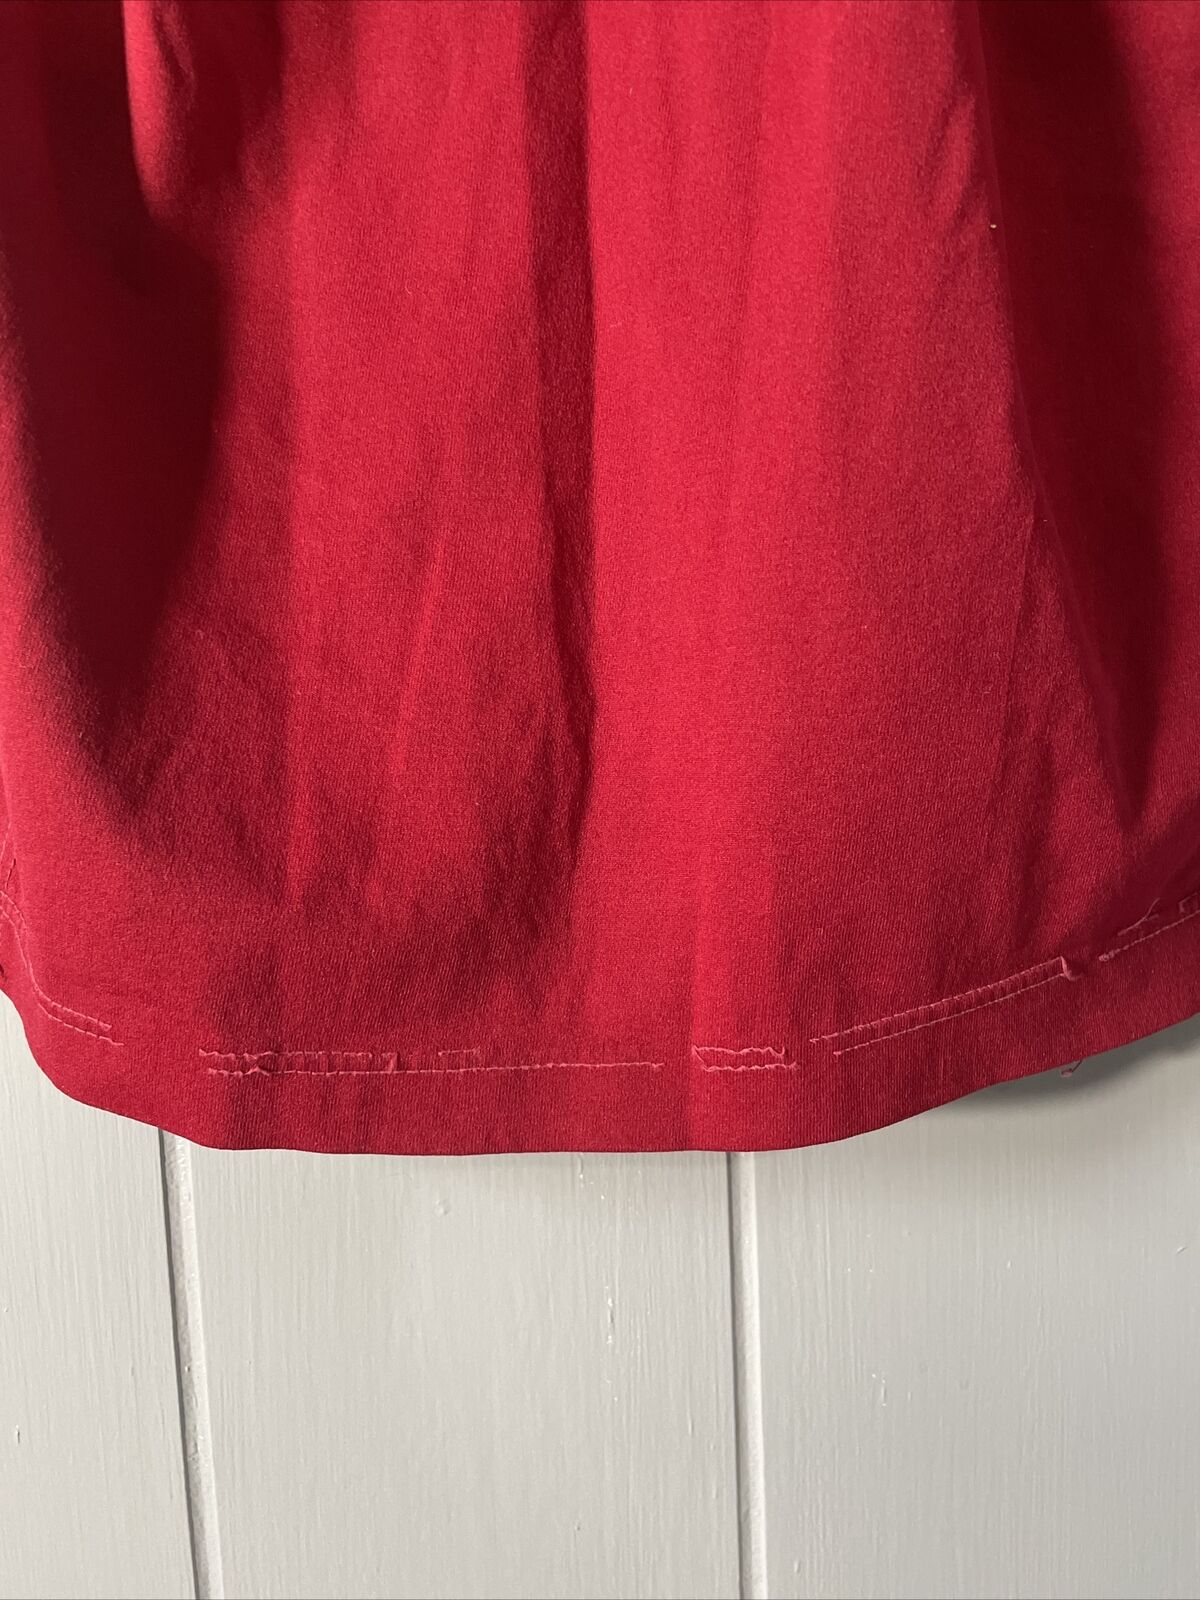 VTG 70's Russell Athletic Red Football Jersey #21… - image 12